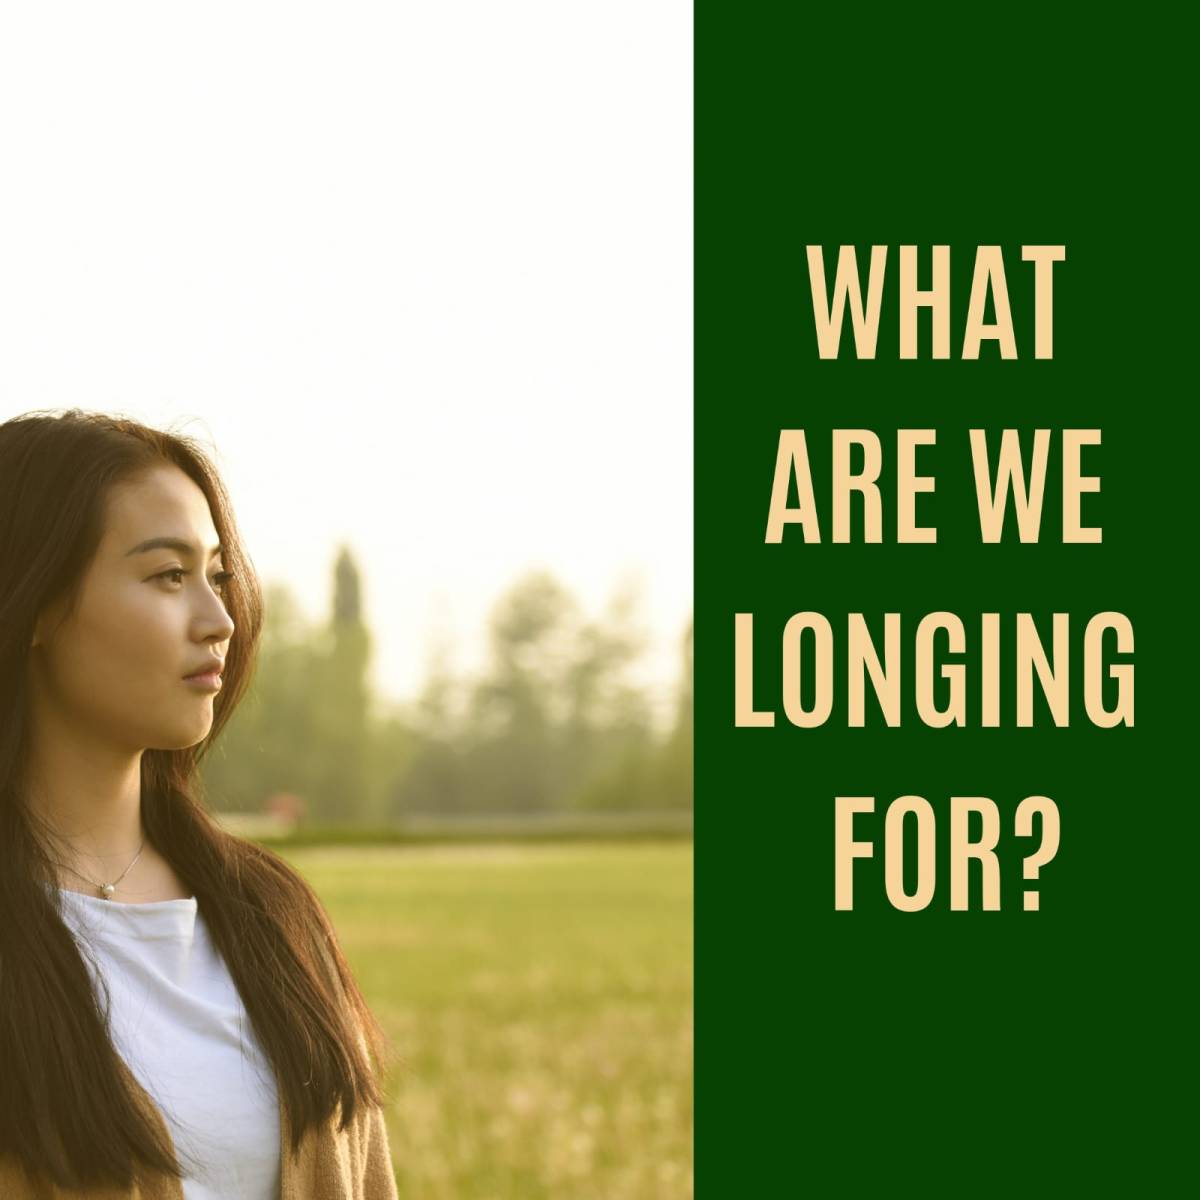 What Are We Longing For?